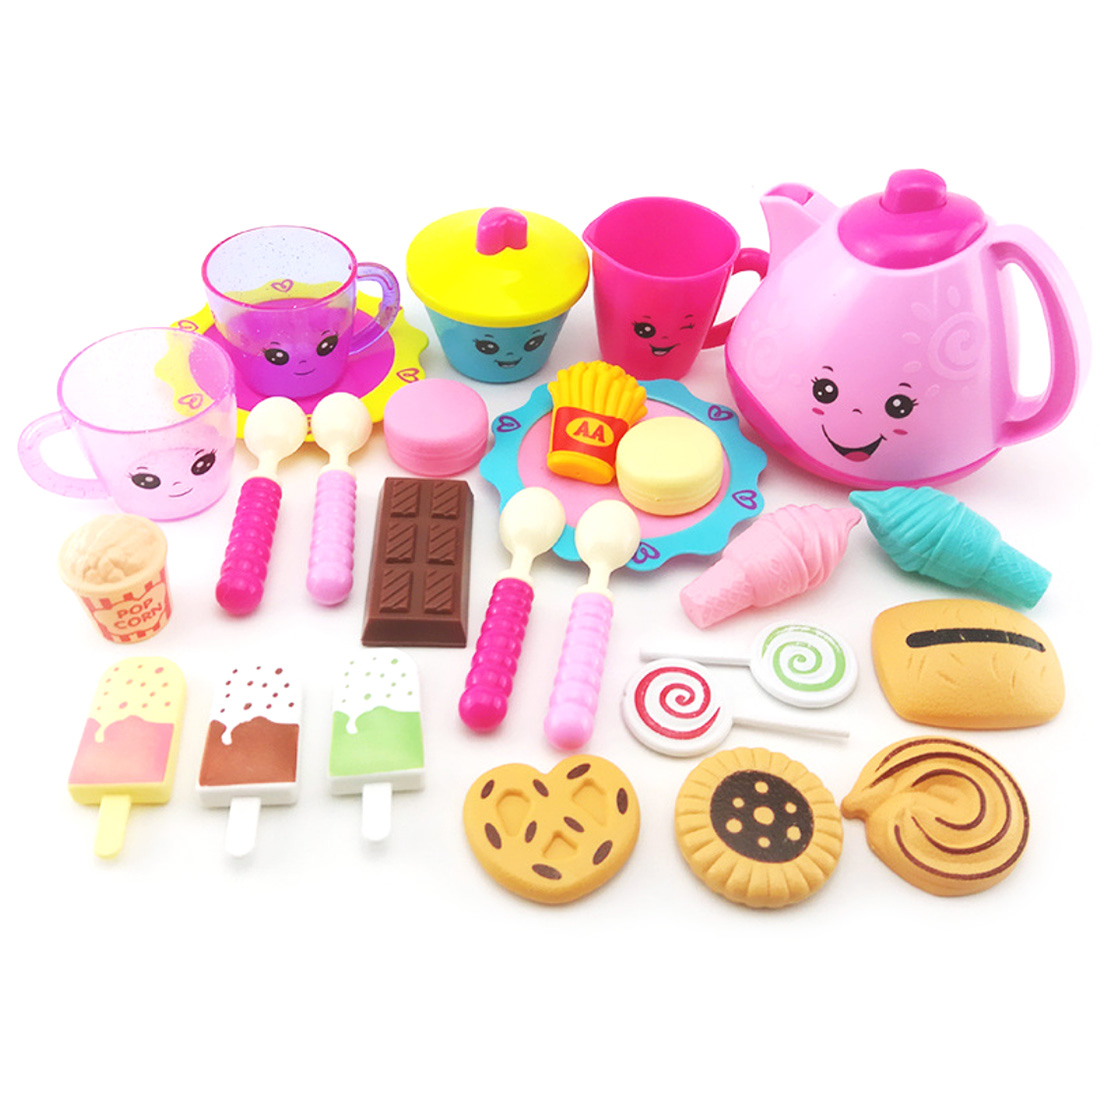 13/28Pcs Children Pretend Play Afternoon Tea Toy Girl Teapot And Refreshment Playset - Pink